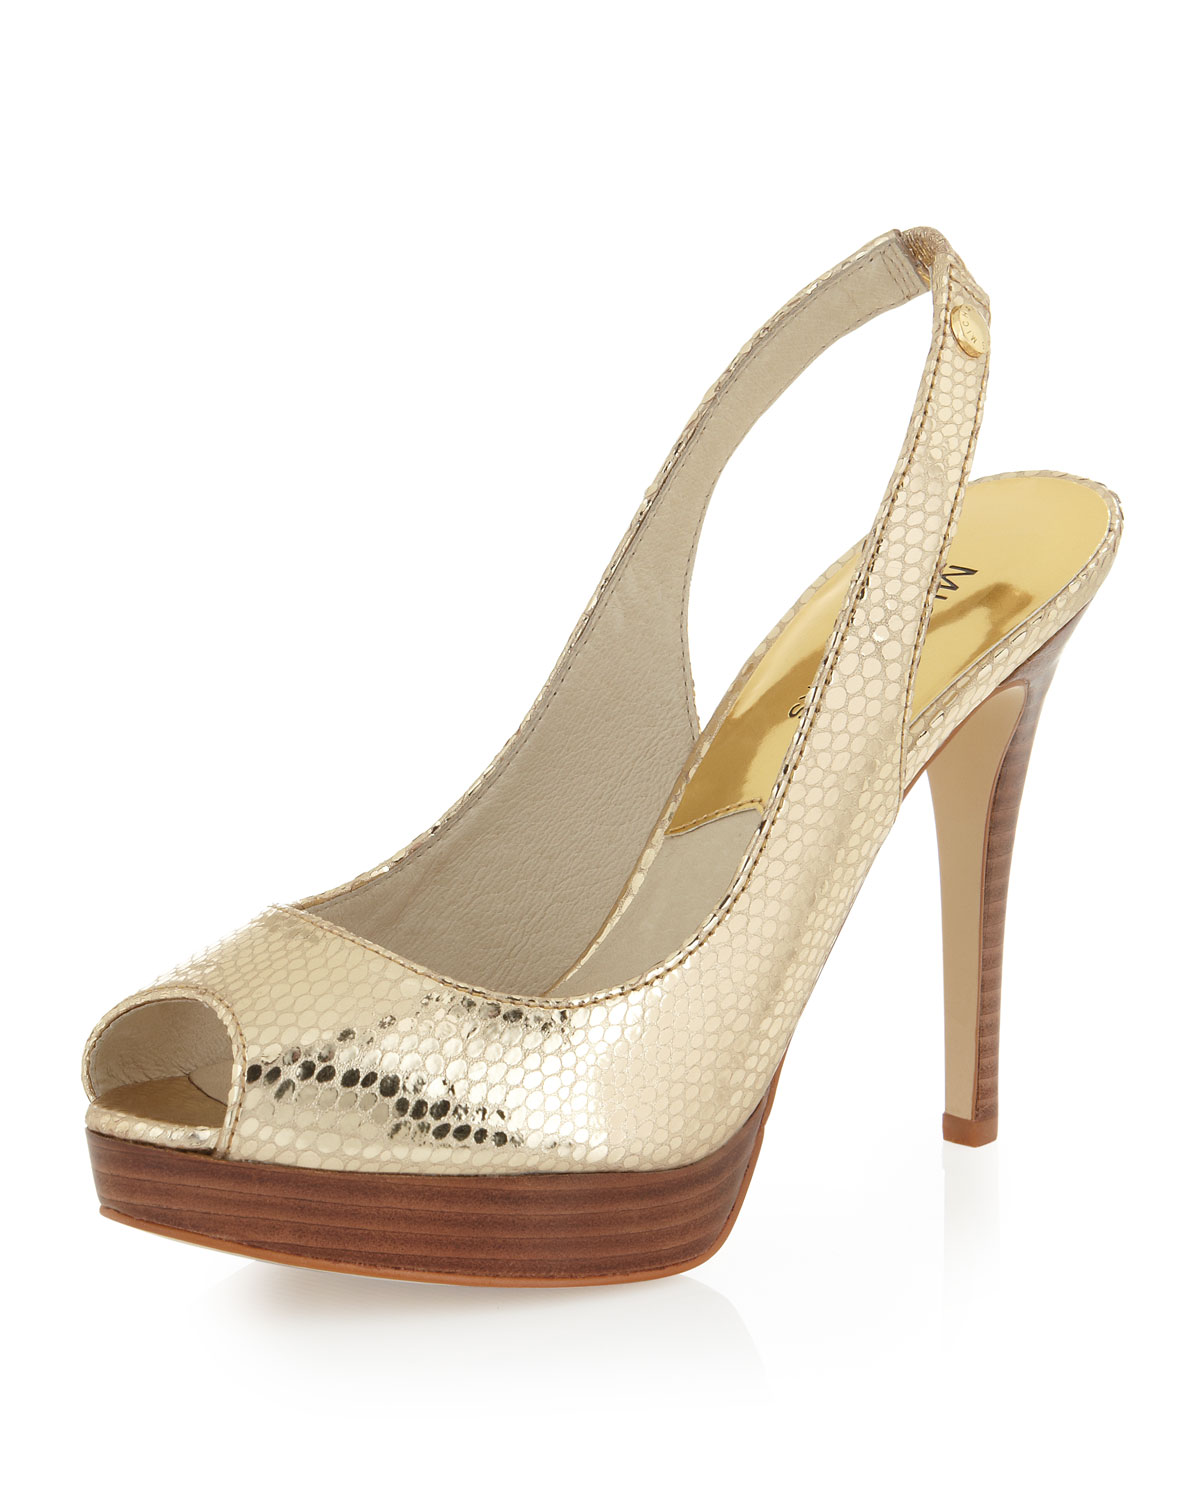 michael michael kors york metallic snakeembossed slingback pump in gold pale gold lyst. Black Bedroom Furniture Sets. Home Design Ideas